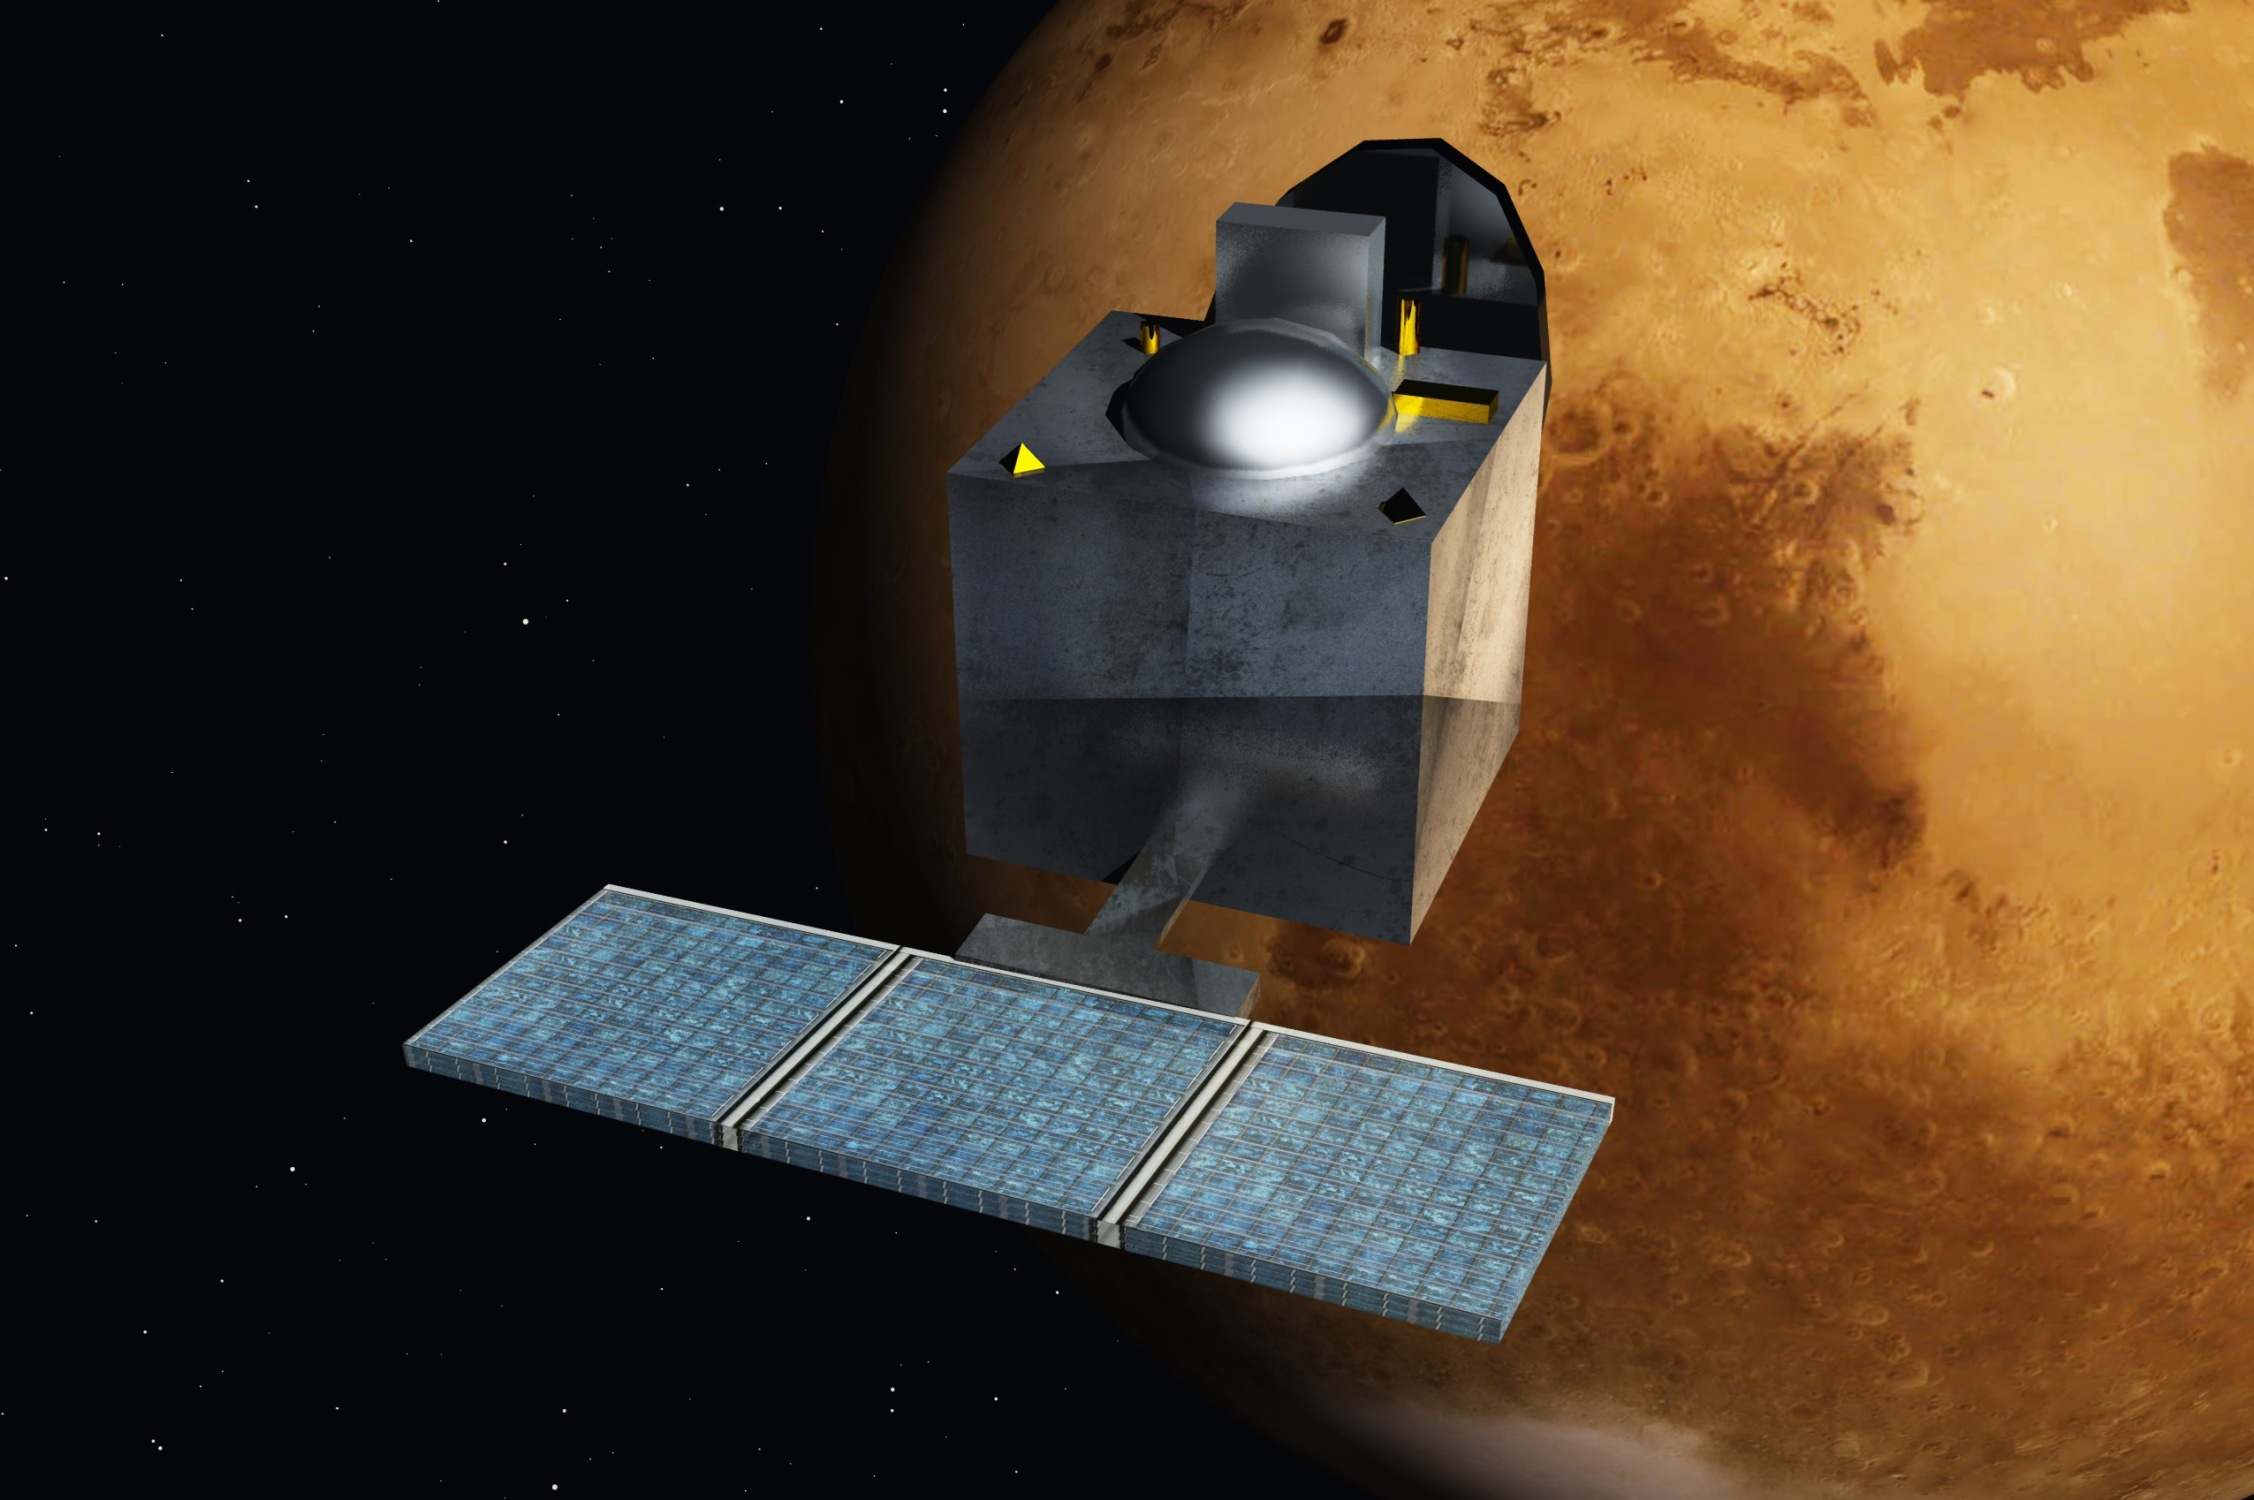 """An artist's concept art of India's Mangalyaan mission. """"People focus on Chandrayaan and Mangalyaan, and are often unaware of ISRO's significant contribution to other spheres of India's development,"""" Mishra says. (Source: <a href=""""https://commons.wikimedia.org/wiki/File:Mars_Orbiter_Mission_-_India_-_ArtistsConcept.jpg#/media/File:Mars_Orbiter_Mission_-_India_-_ArtistsConcept.jpg"""" target=""""_blank"""">Wikimedia Commons</a>)"""